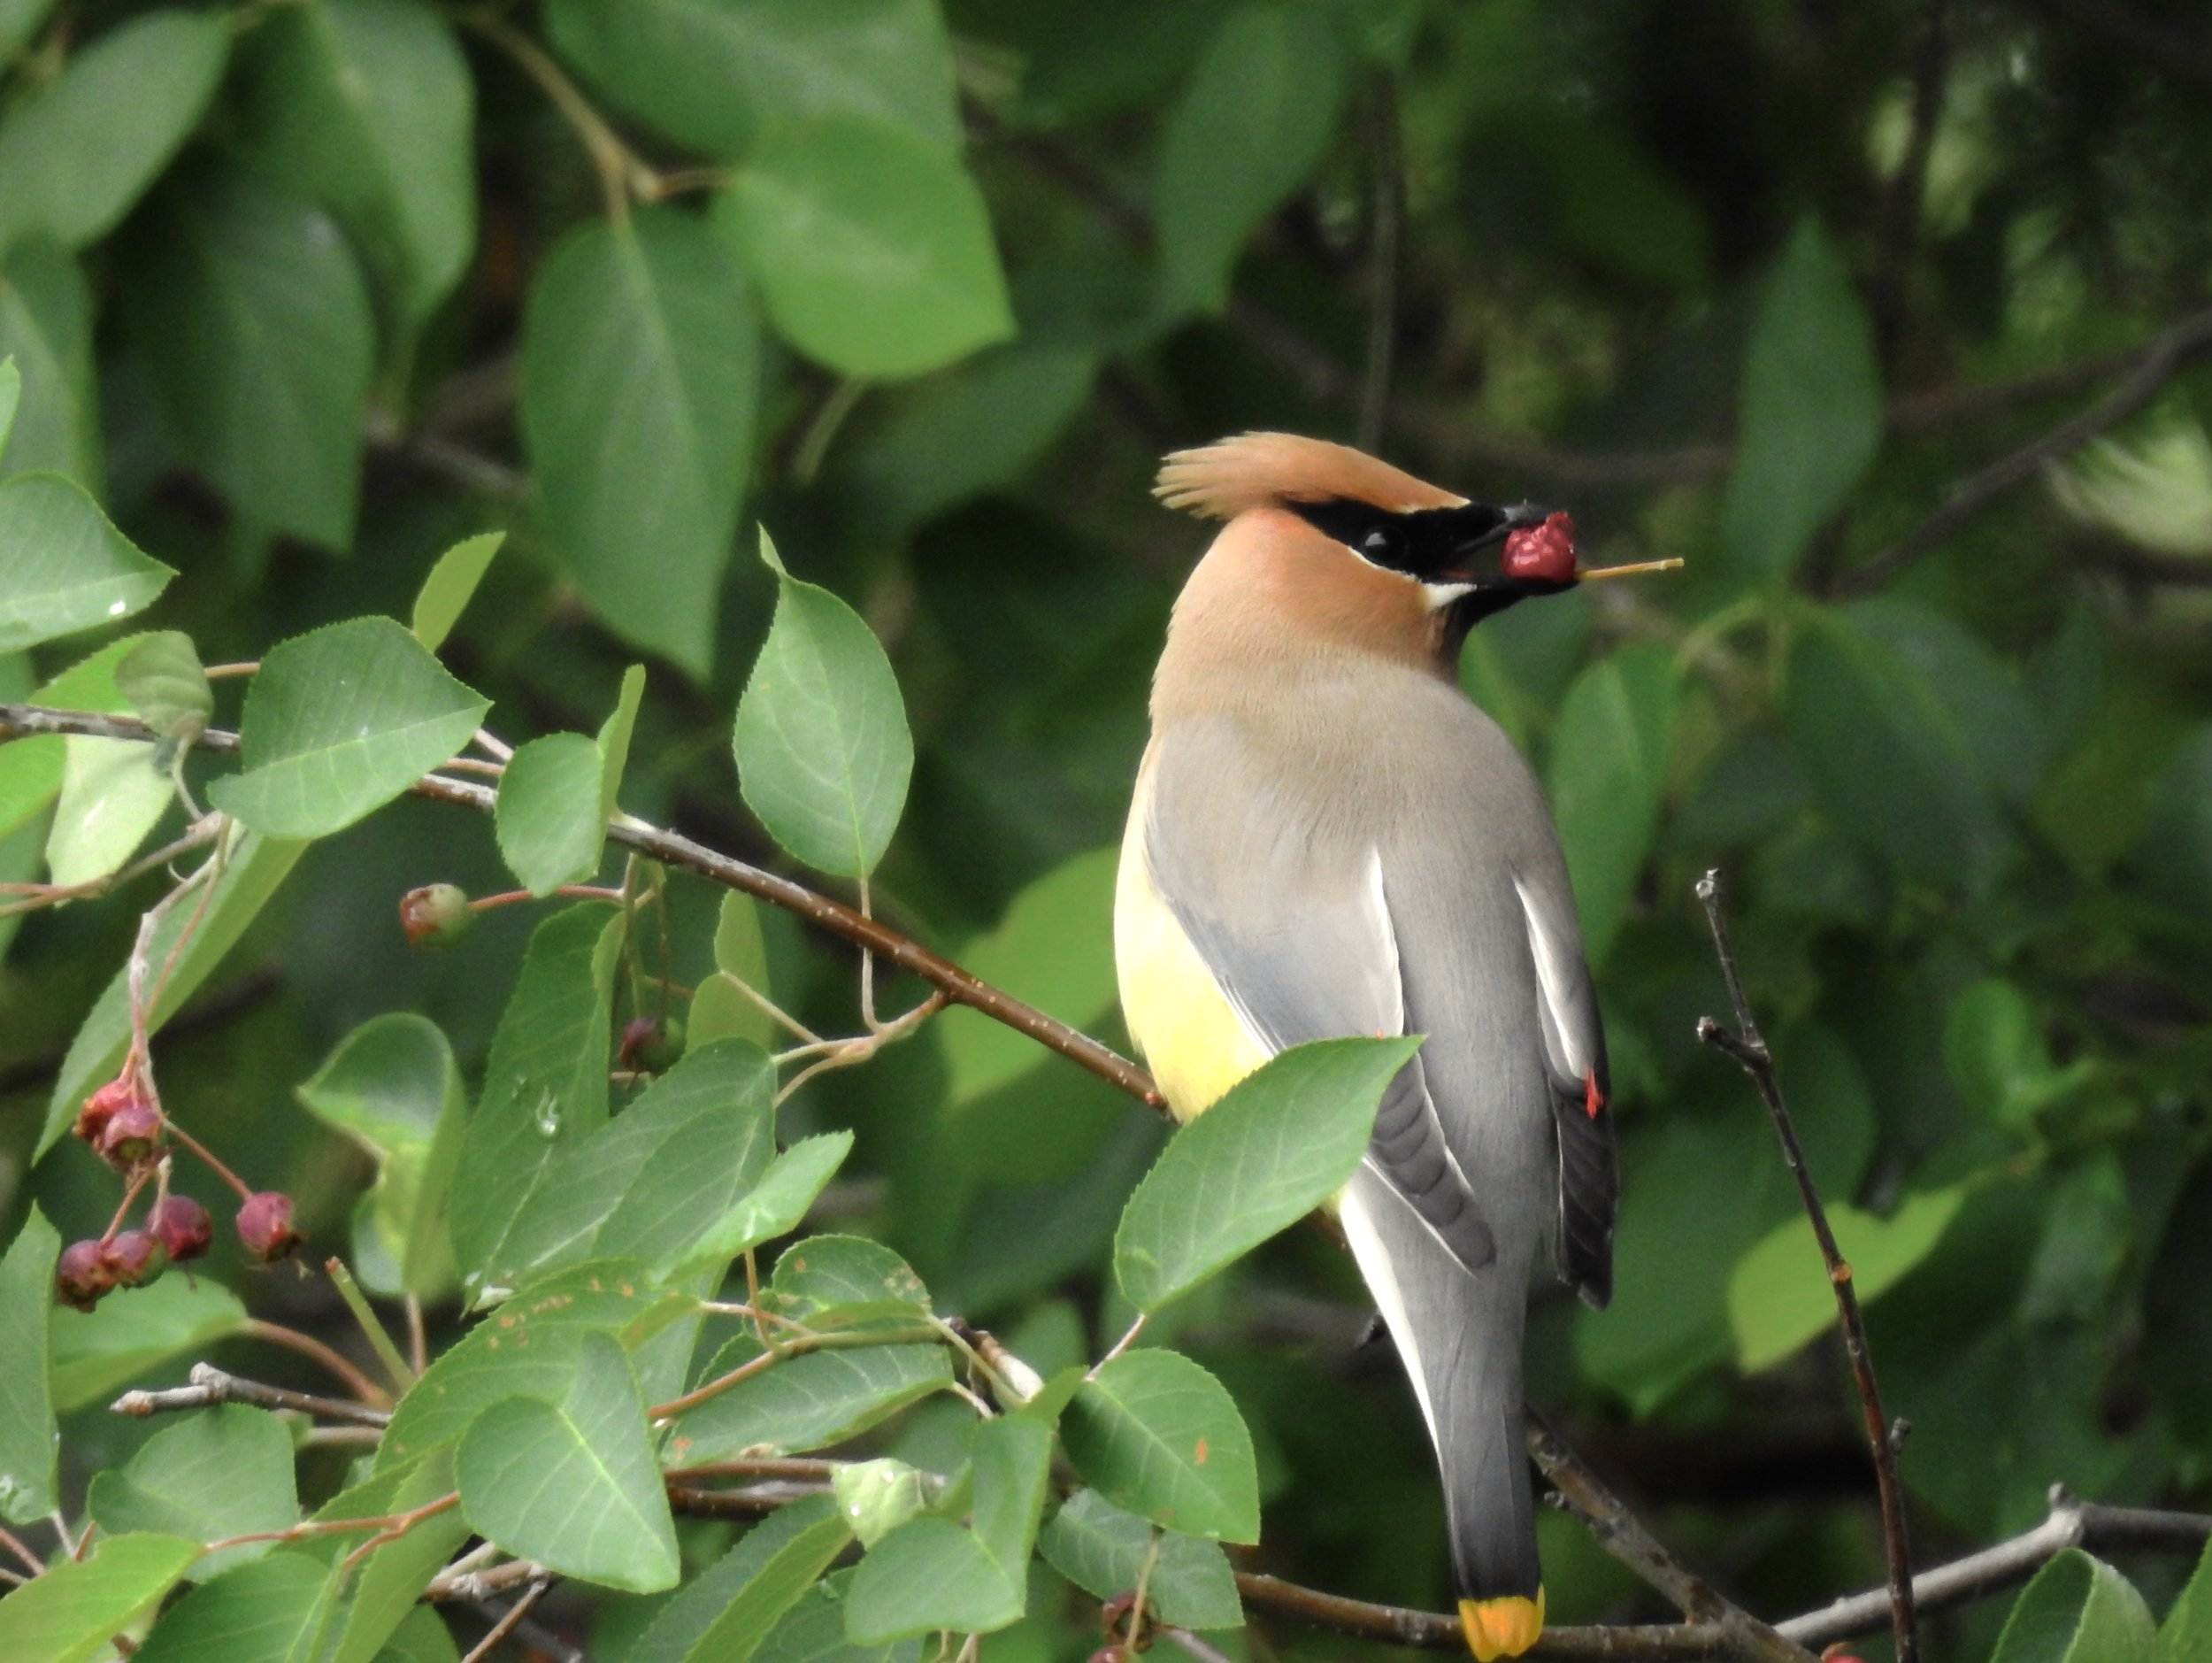 Cedar Waxwing enjoying berries, photo by Toribird